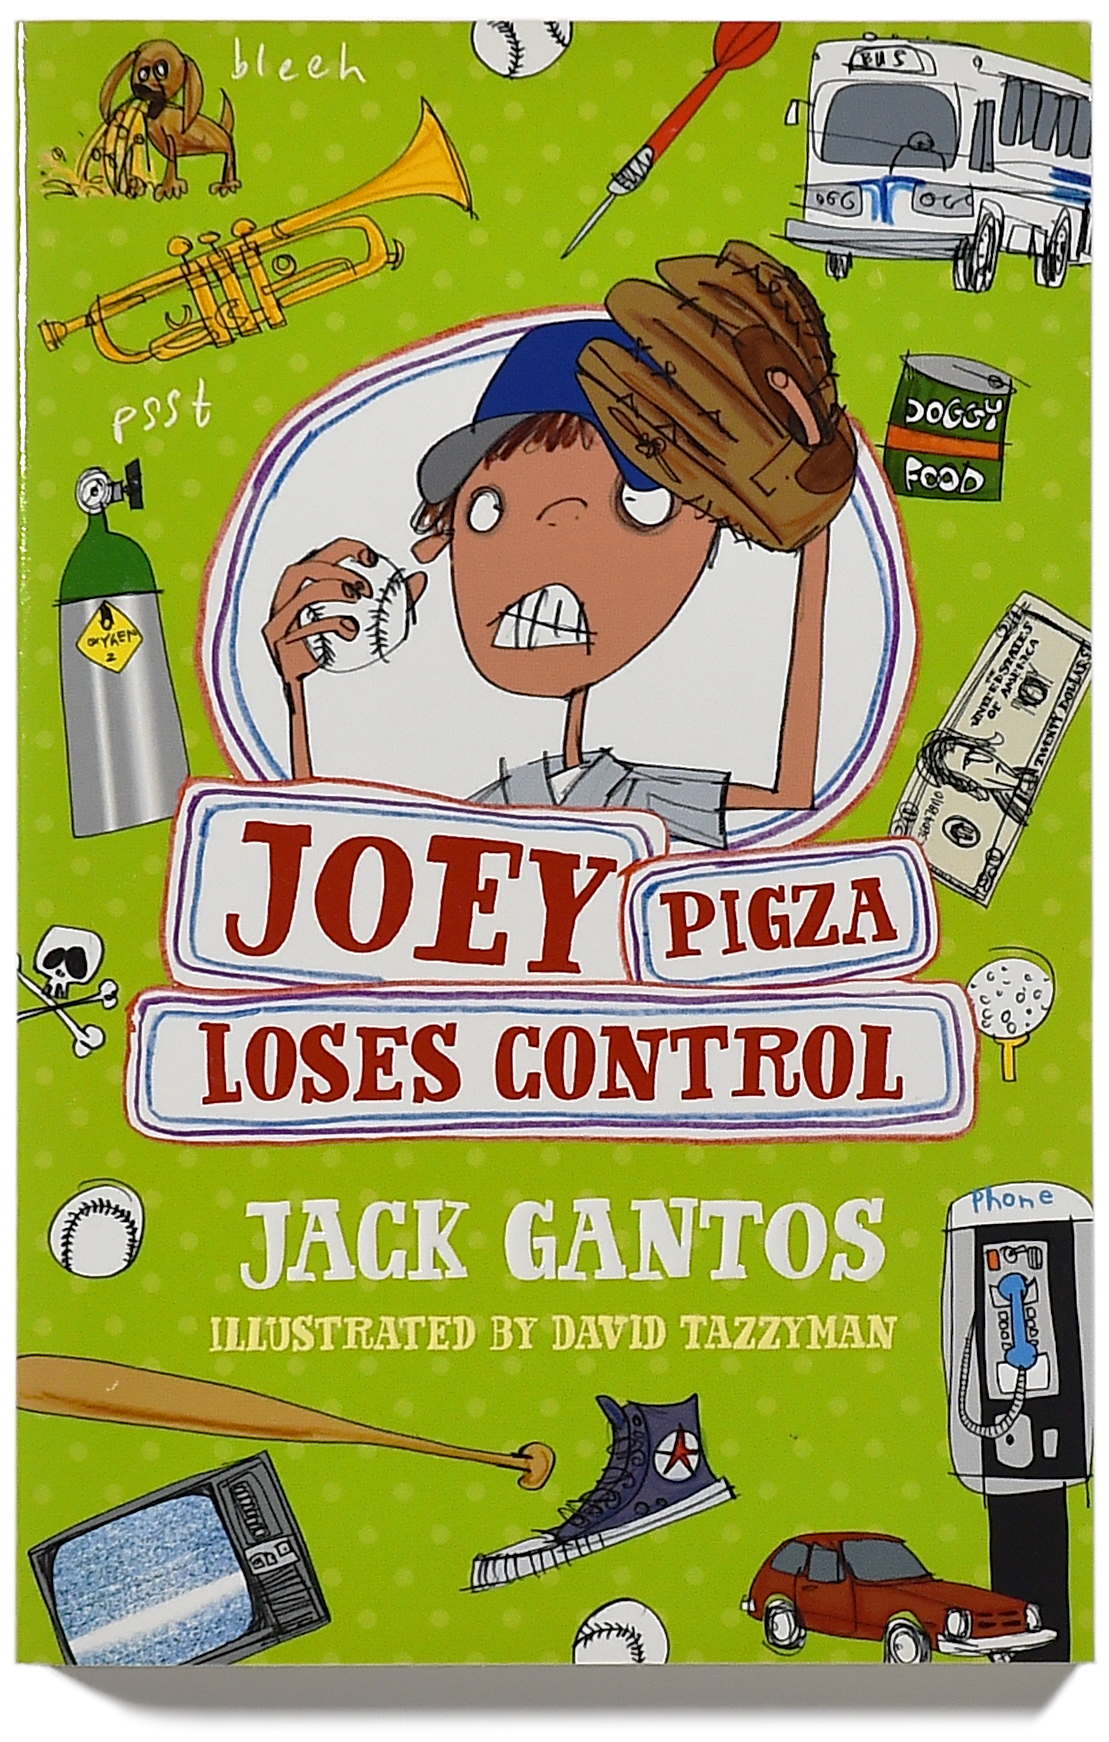 Joey Pigza Loses Control cover.FIN.jpg